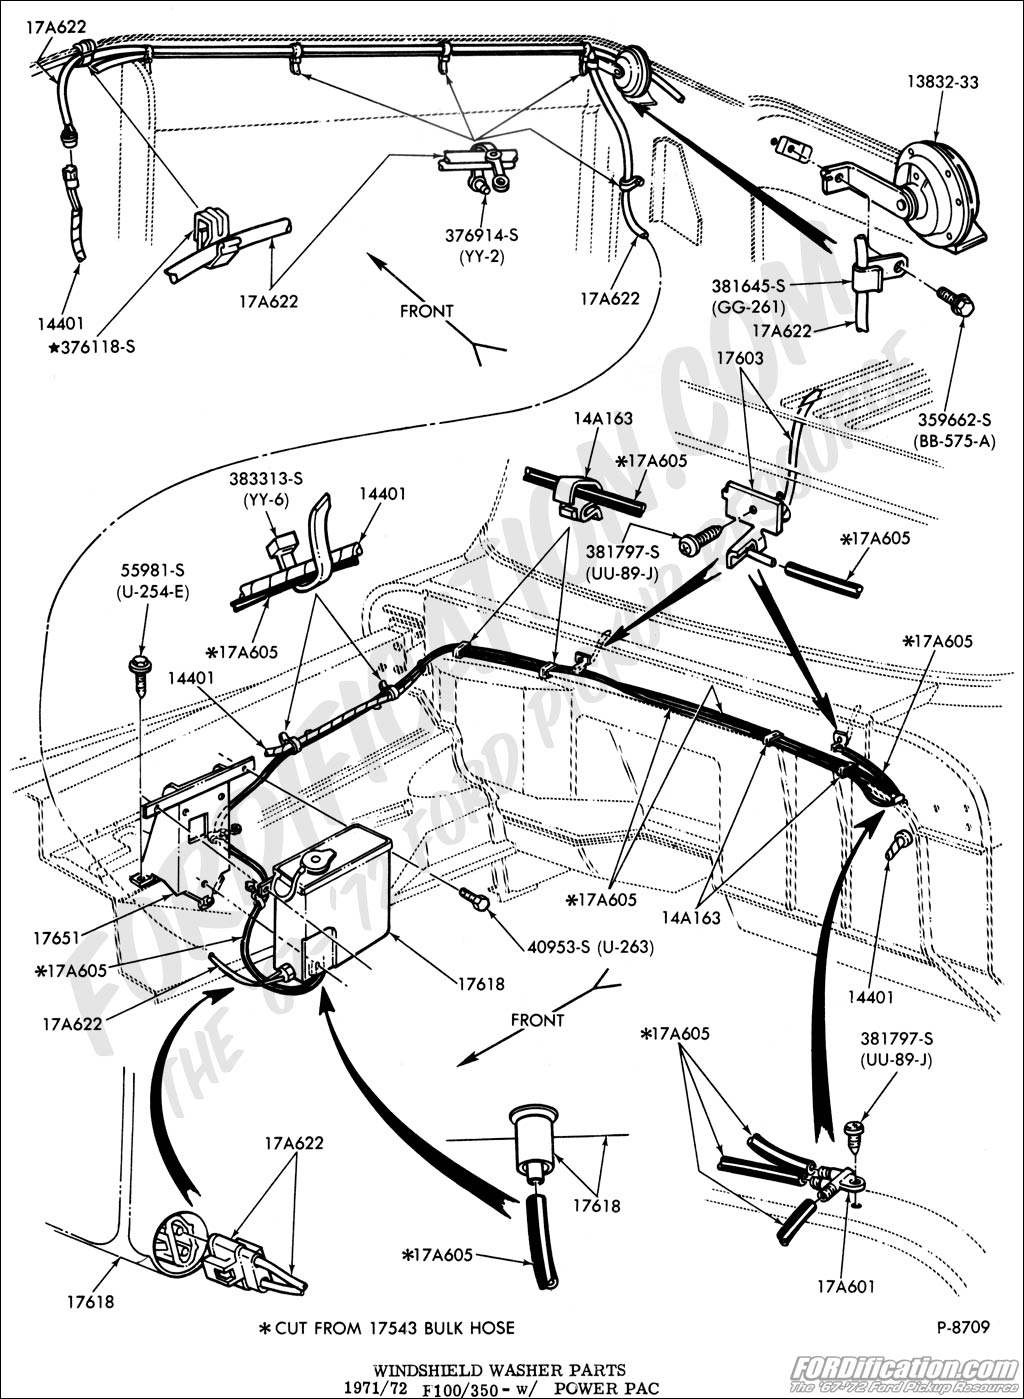 Ford Truck Drawing At Free For Personal Use 78 Bronco Horn Wiring Diagram 1024x1399 Technical Drawings And Schematics